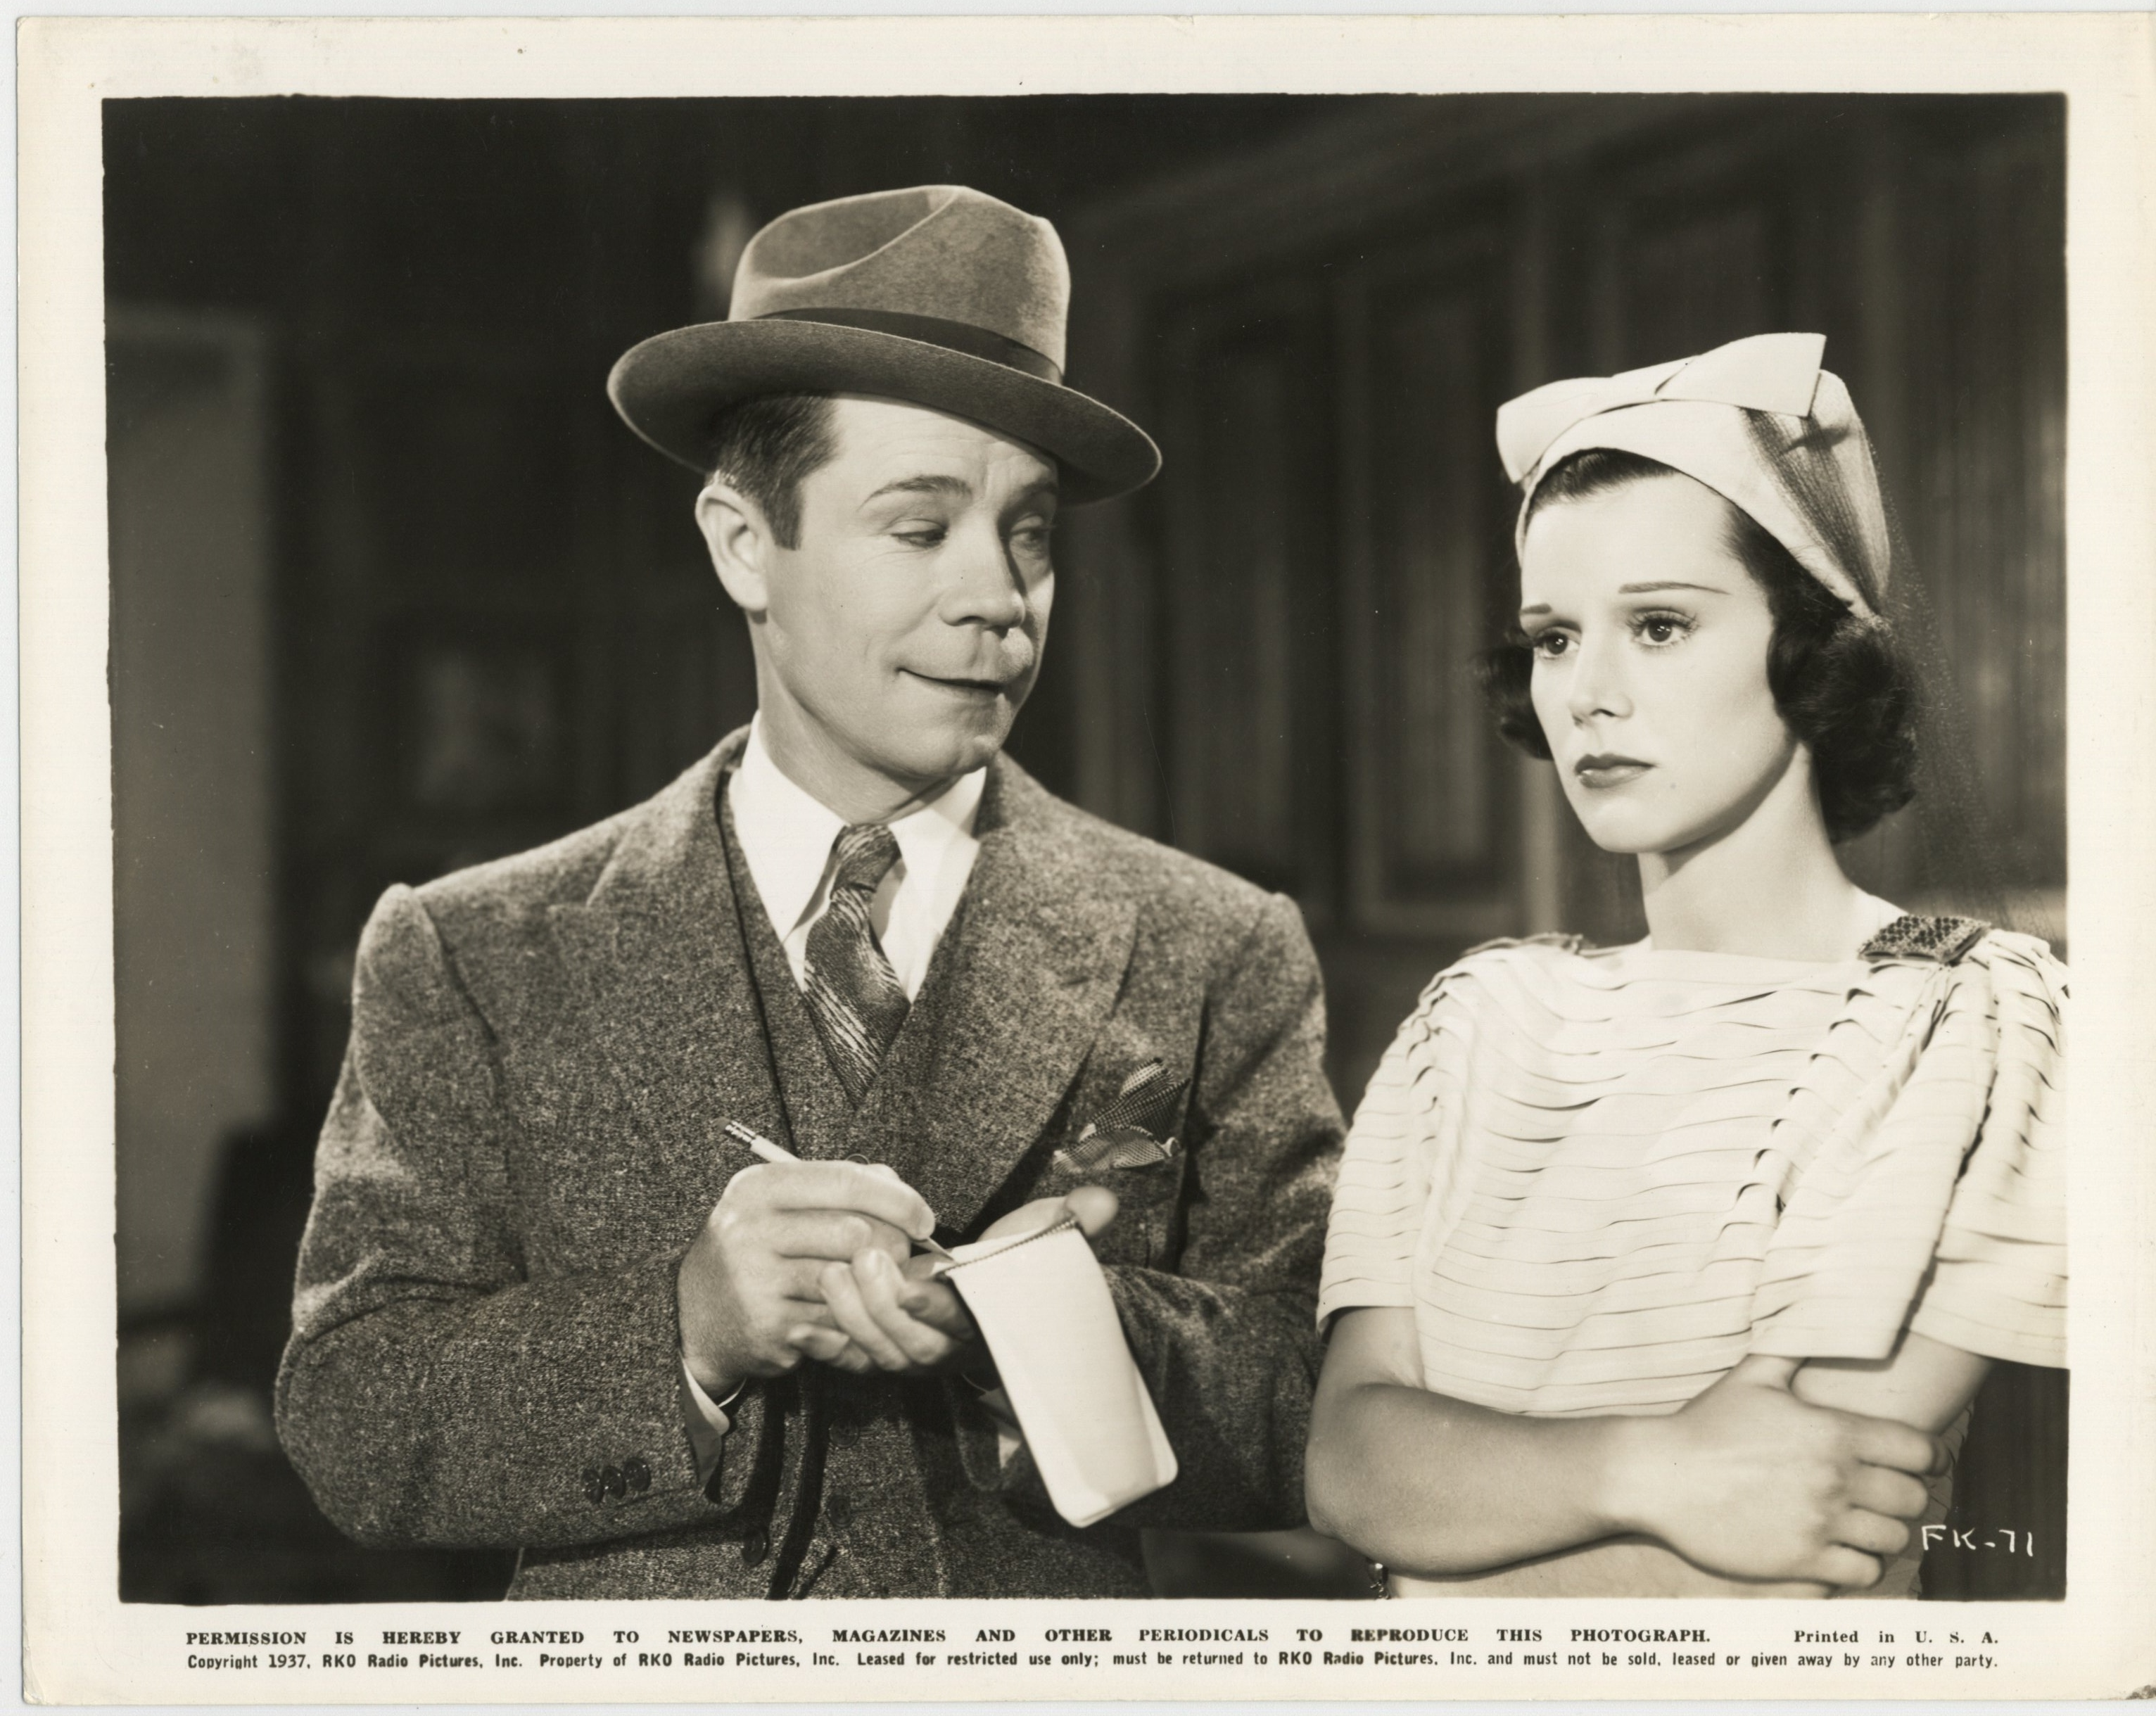 Joe E. Brown and Helen Mack in Fit for a King (1937)